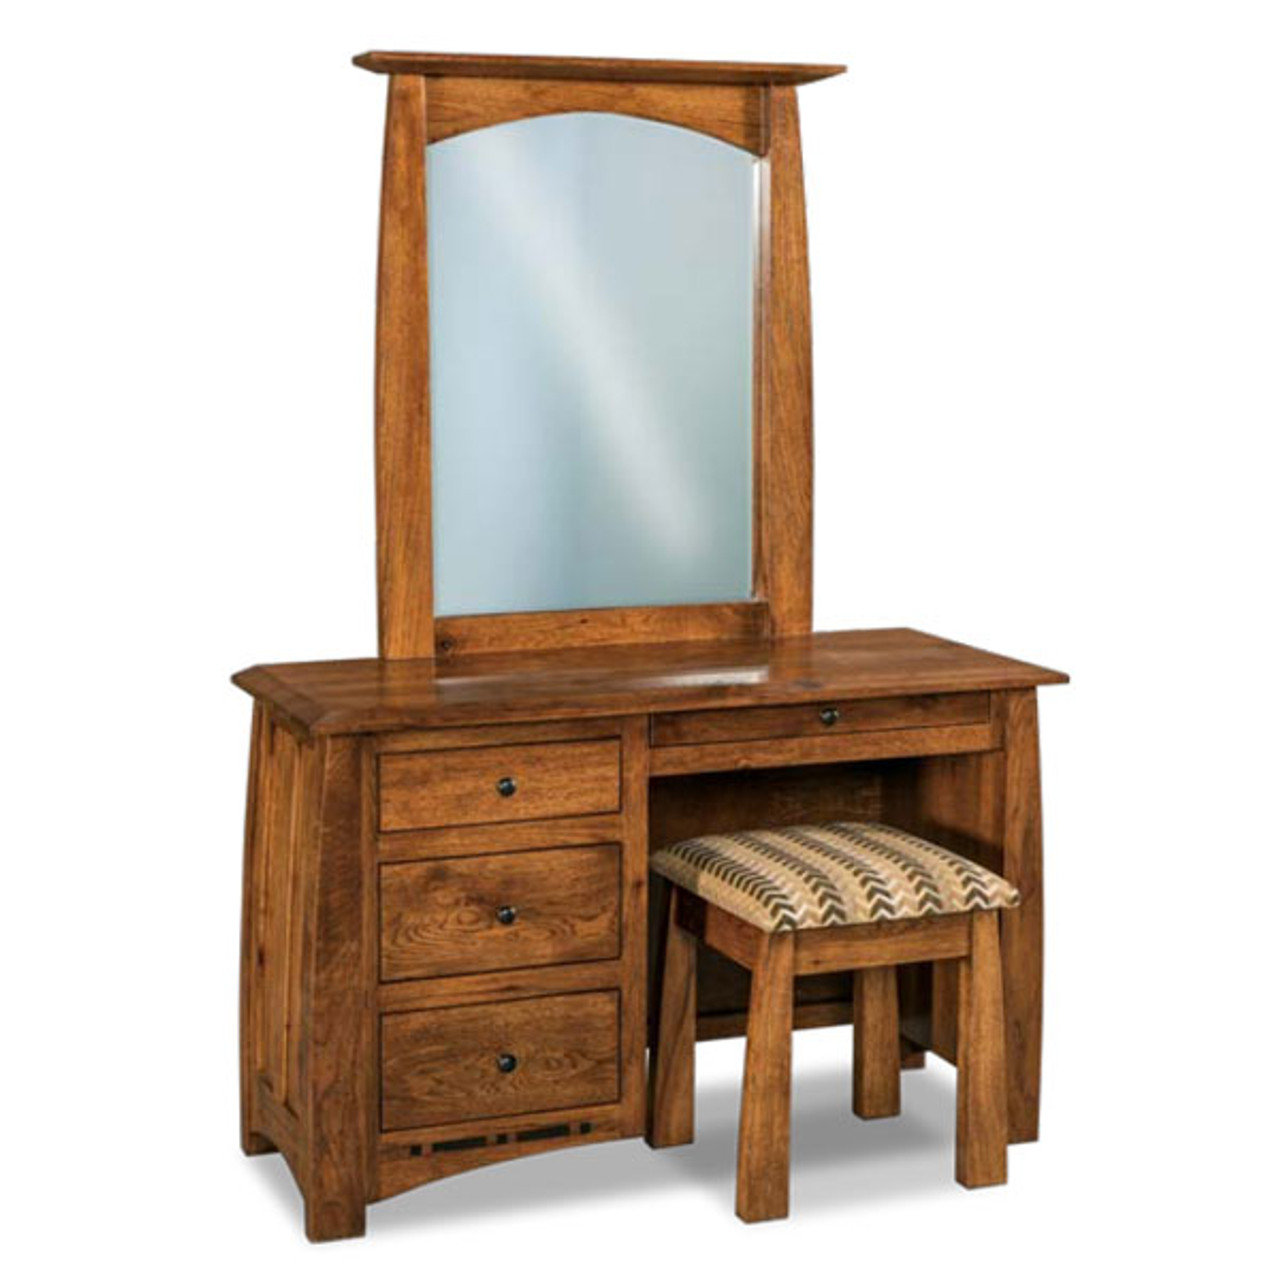 Awesome Boulder Creek Vanity Bench Cherry Valley Furniture Squirreltailoven Fun Painted Chair Ideas Images Squirreltailovenorg